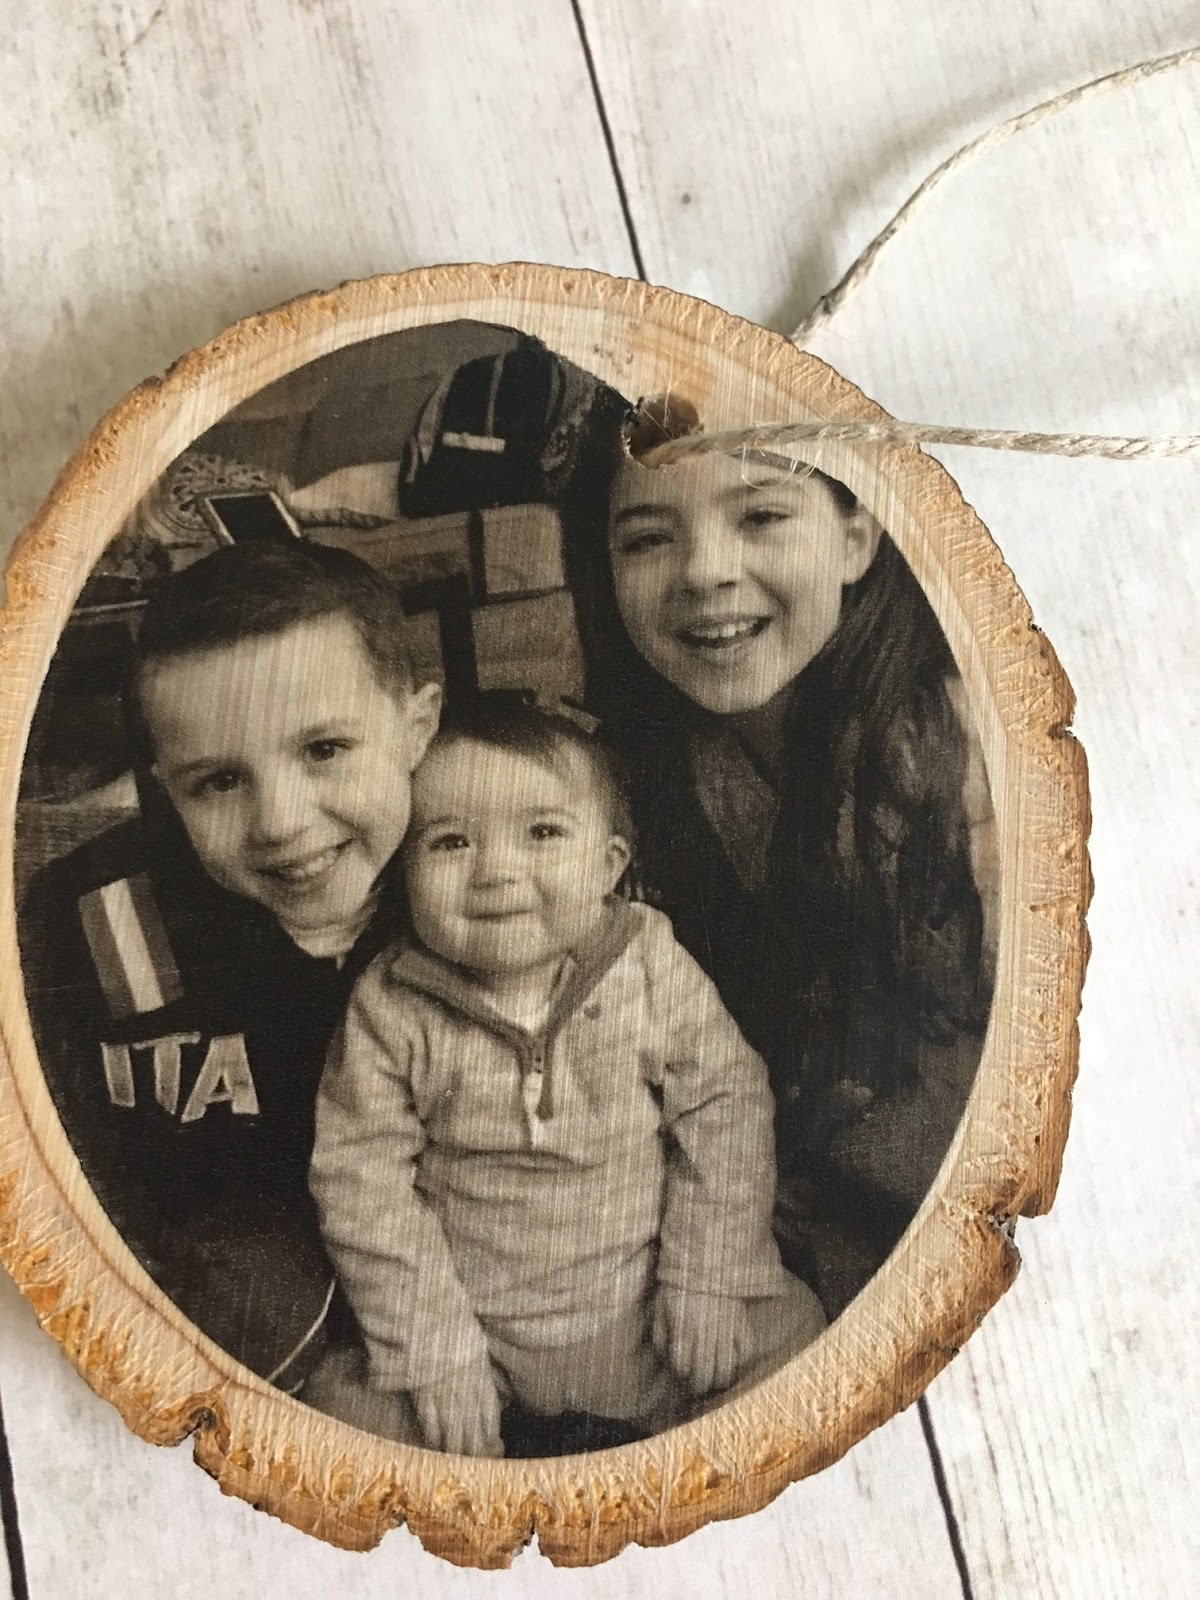 Transferring Photos To Wood With Silhouette Temporary Tattoo Paper Silhouette School Here you will find unique products that are themed entirely around your own photographs! transferring photos to wood with